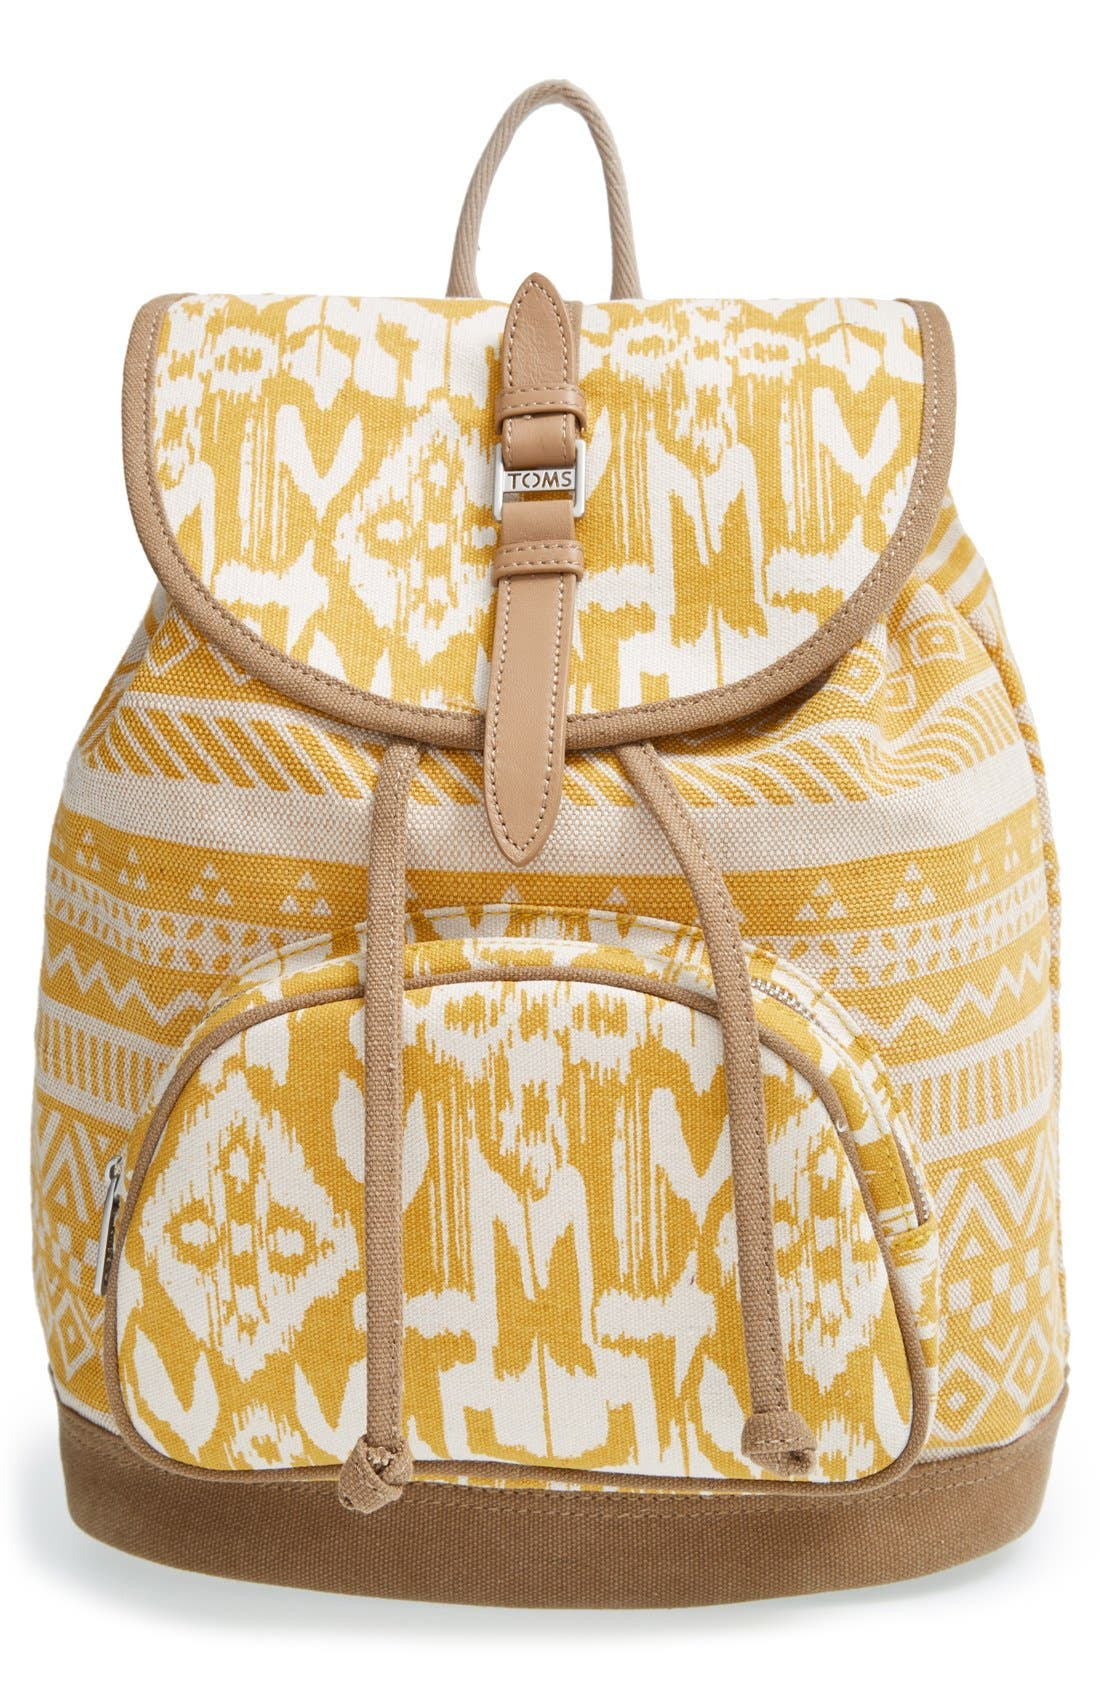 Alternate Image 1 Selected - TOMS 'Traveler' Canvas Backpack